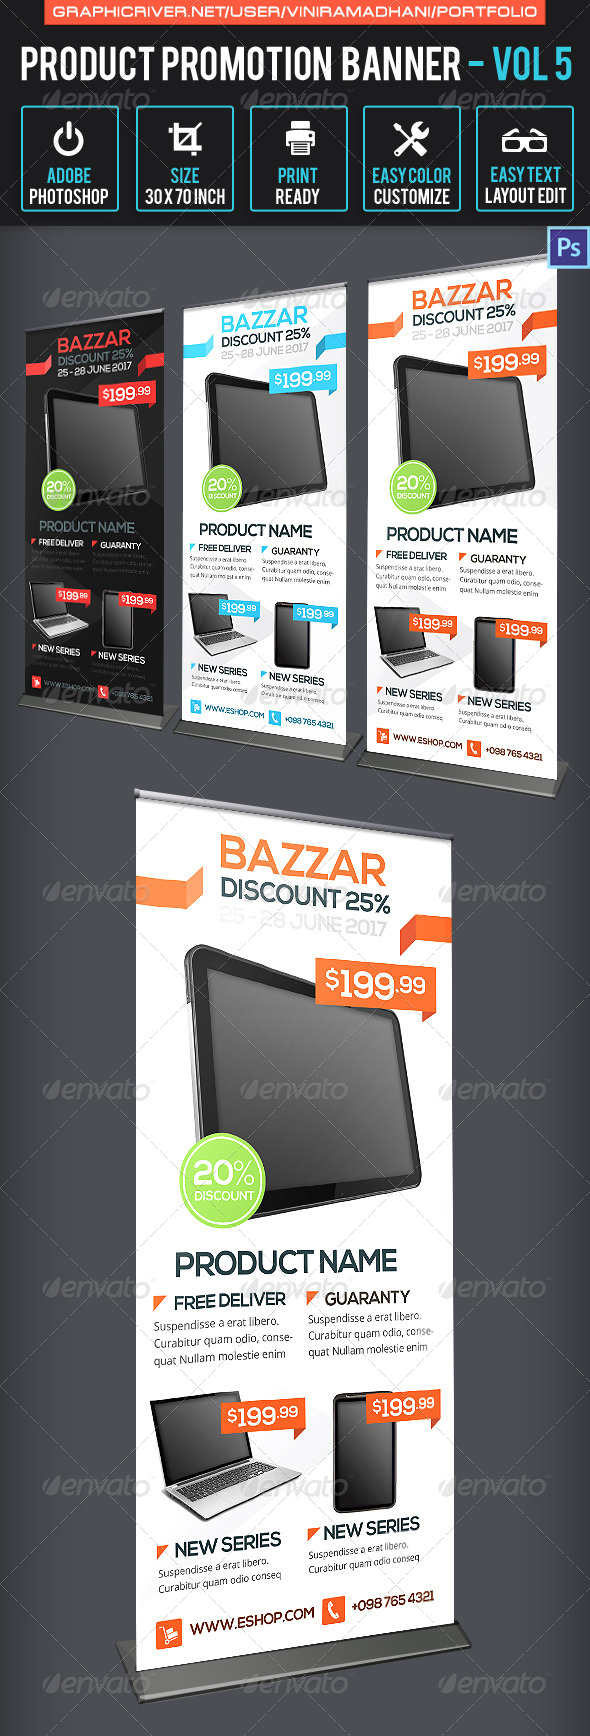 GraphicRiver Product Promotion Banner Volume 5 7171425